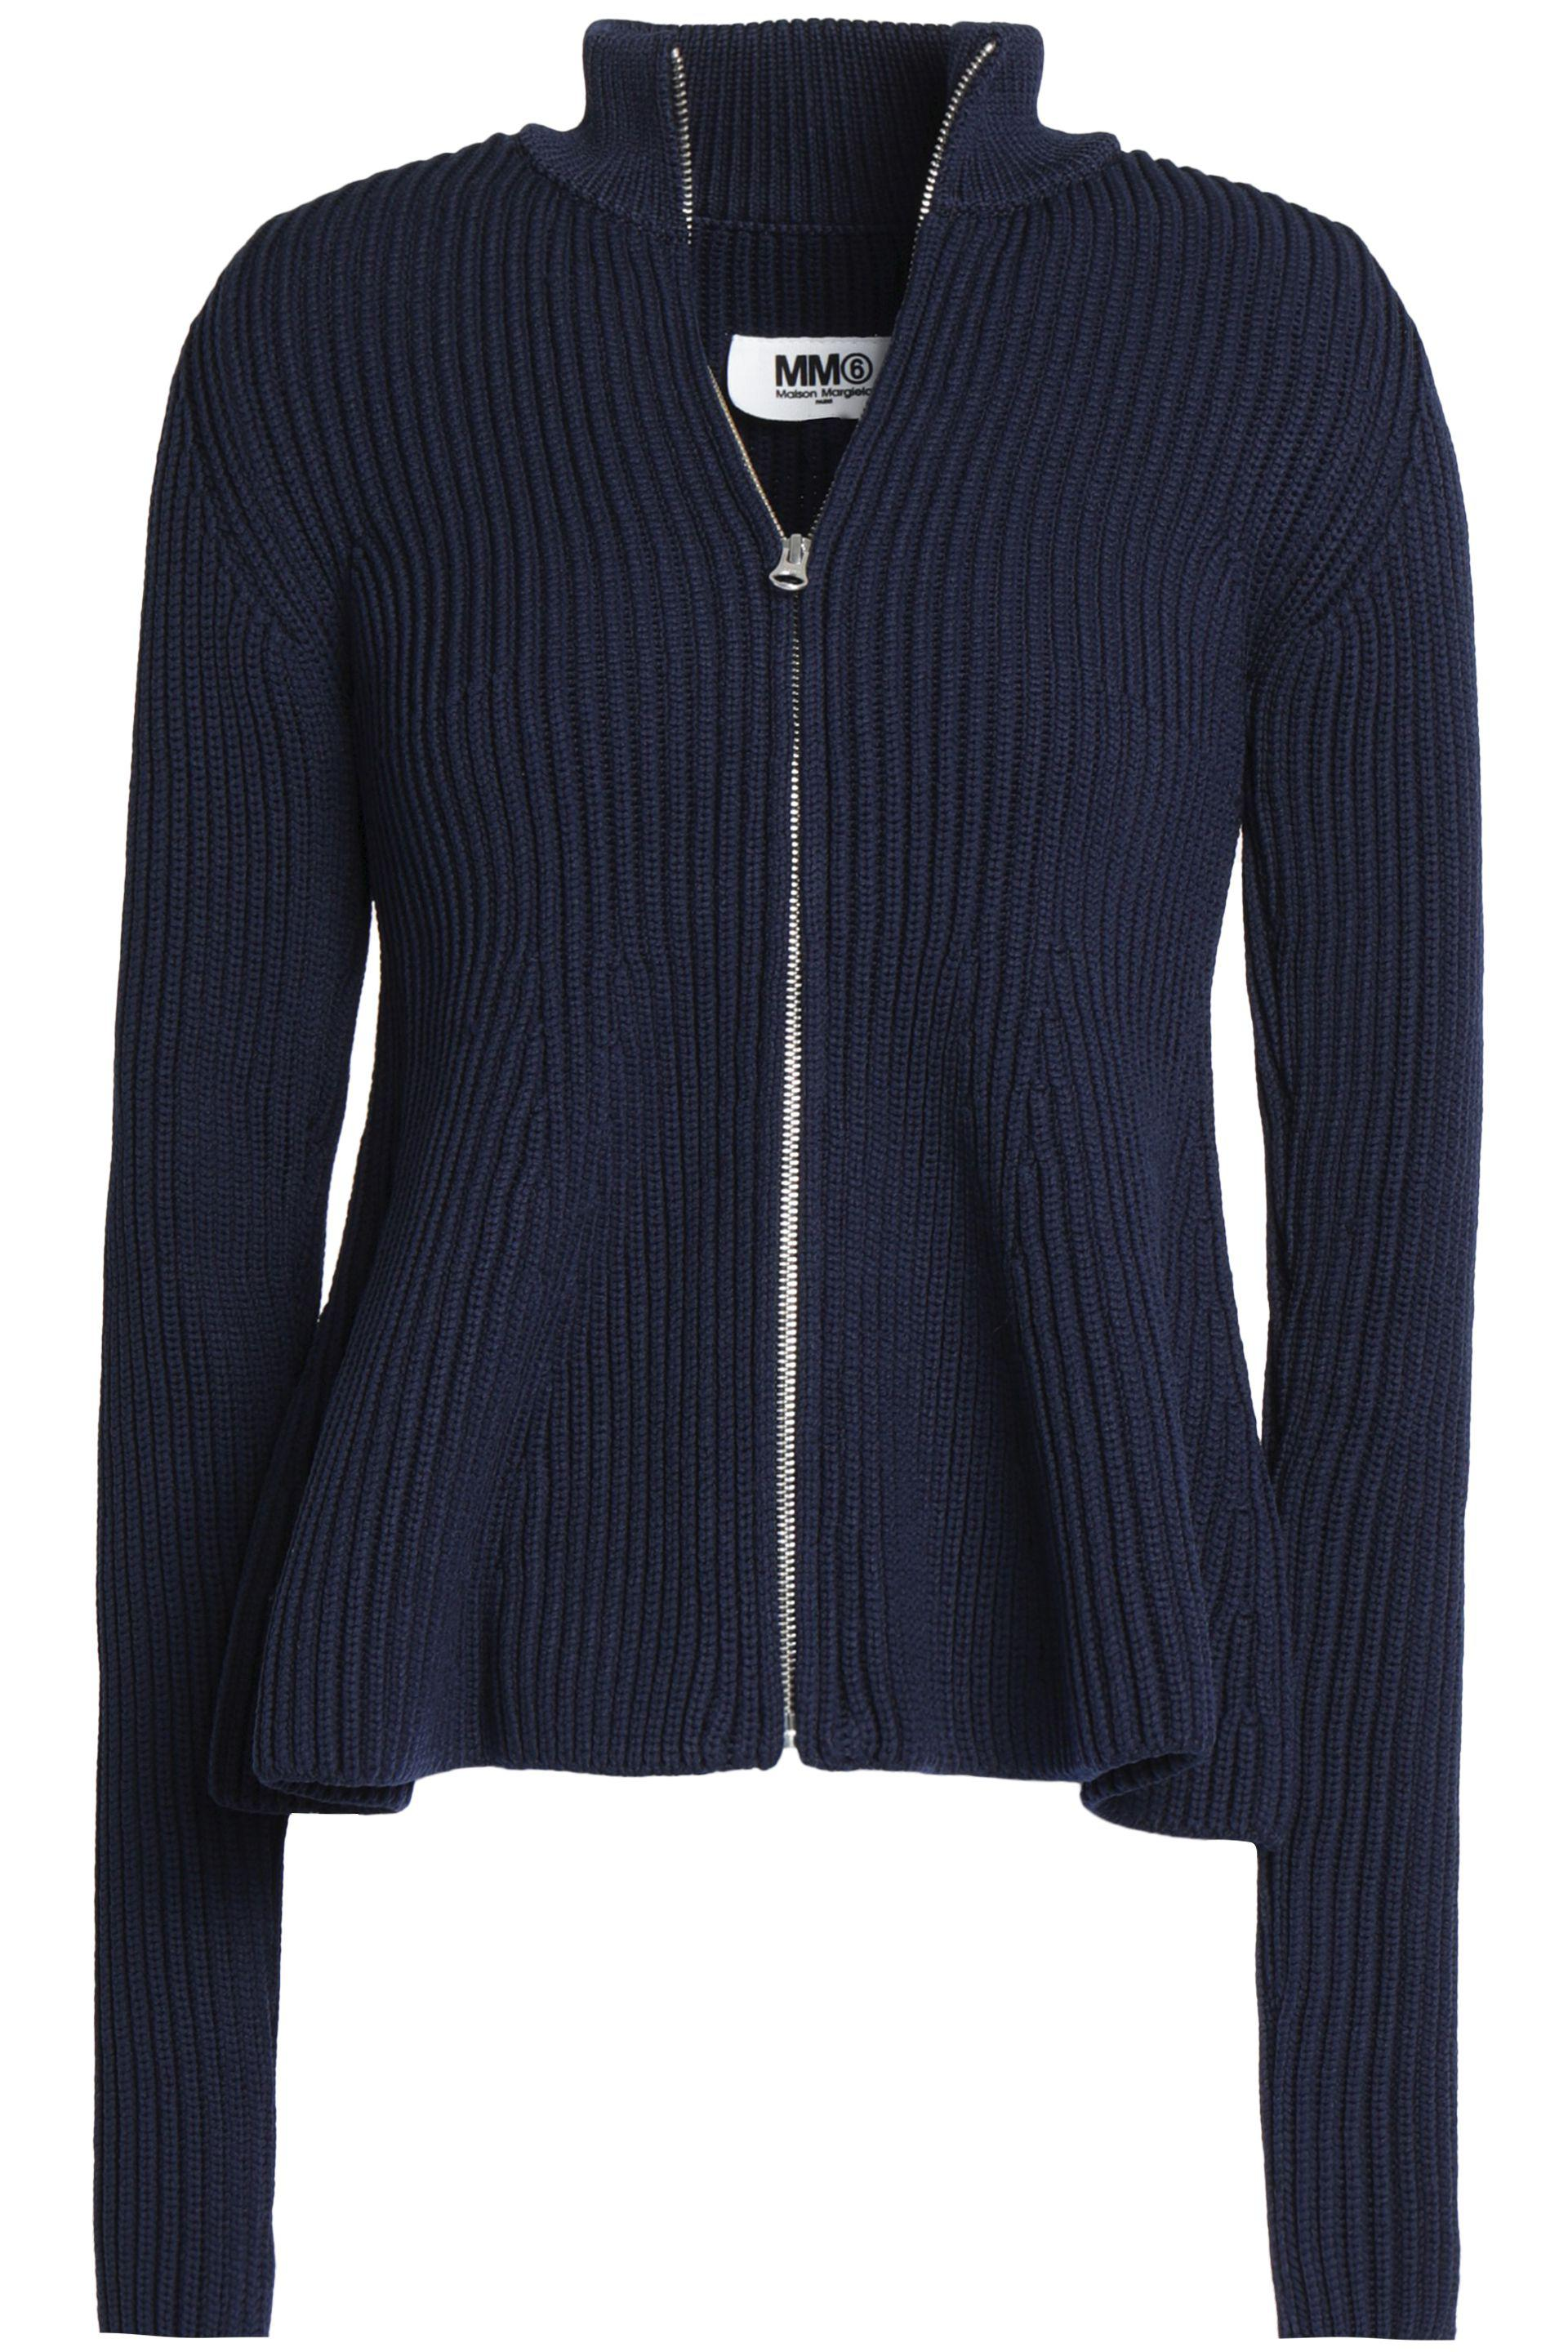 Mm6 By Maison Margiela Woman Ribbed-knit Cardigan Navy Size M Maison Martin Margiela Buy Cheap Official Purchase Online Free Shipping Release Dates Free Shipping Amazon Nicekicks Sale Online Bxsh9HUO3